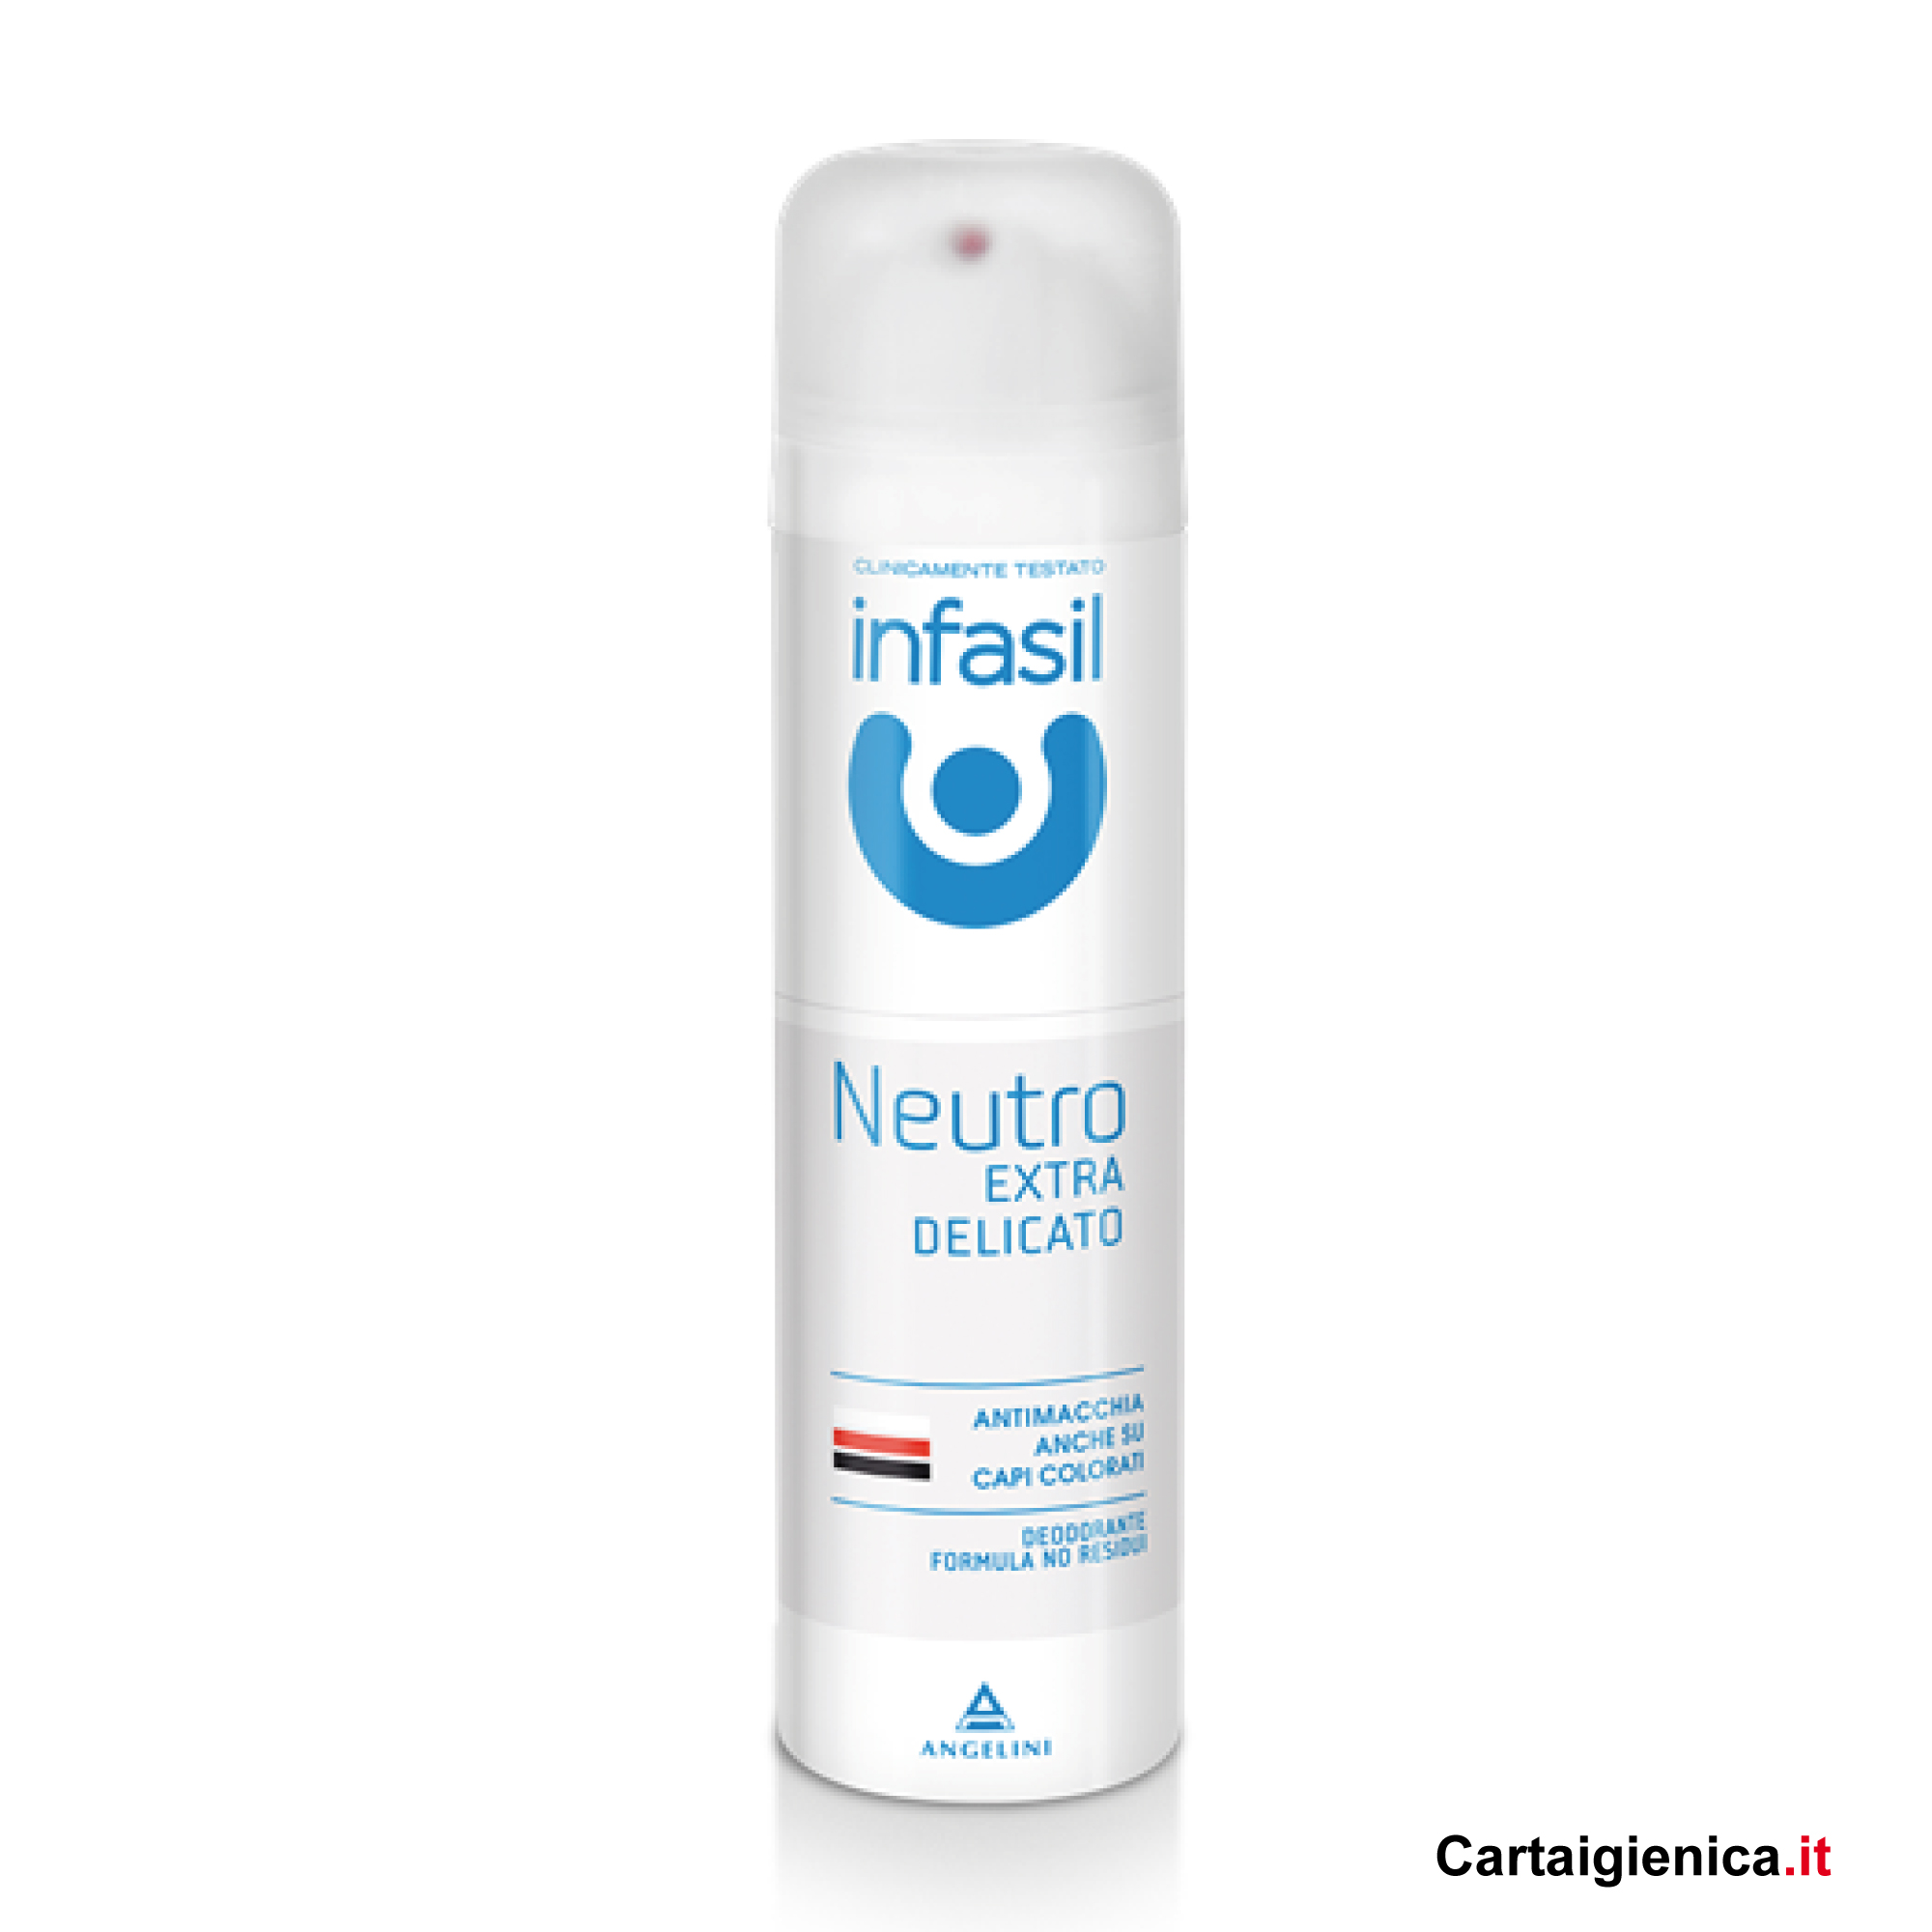 infasil deodorante spray neutro extra delicato 150 ml